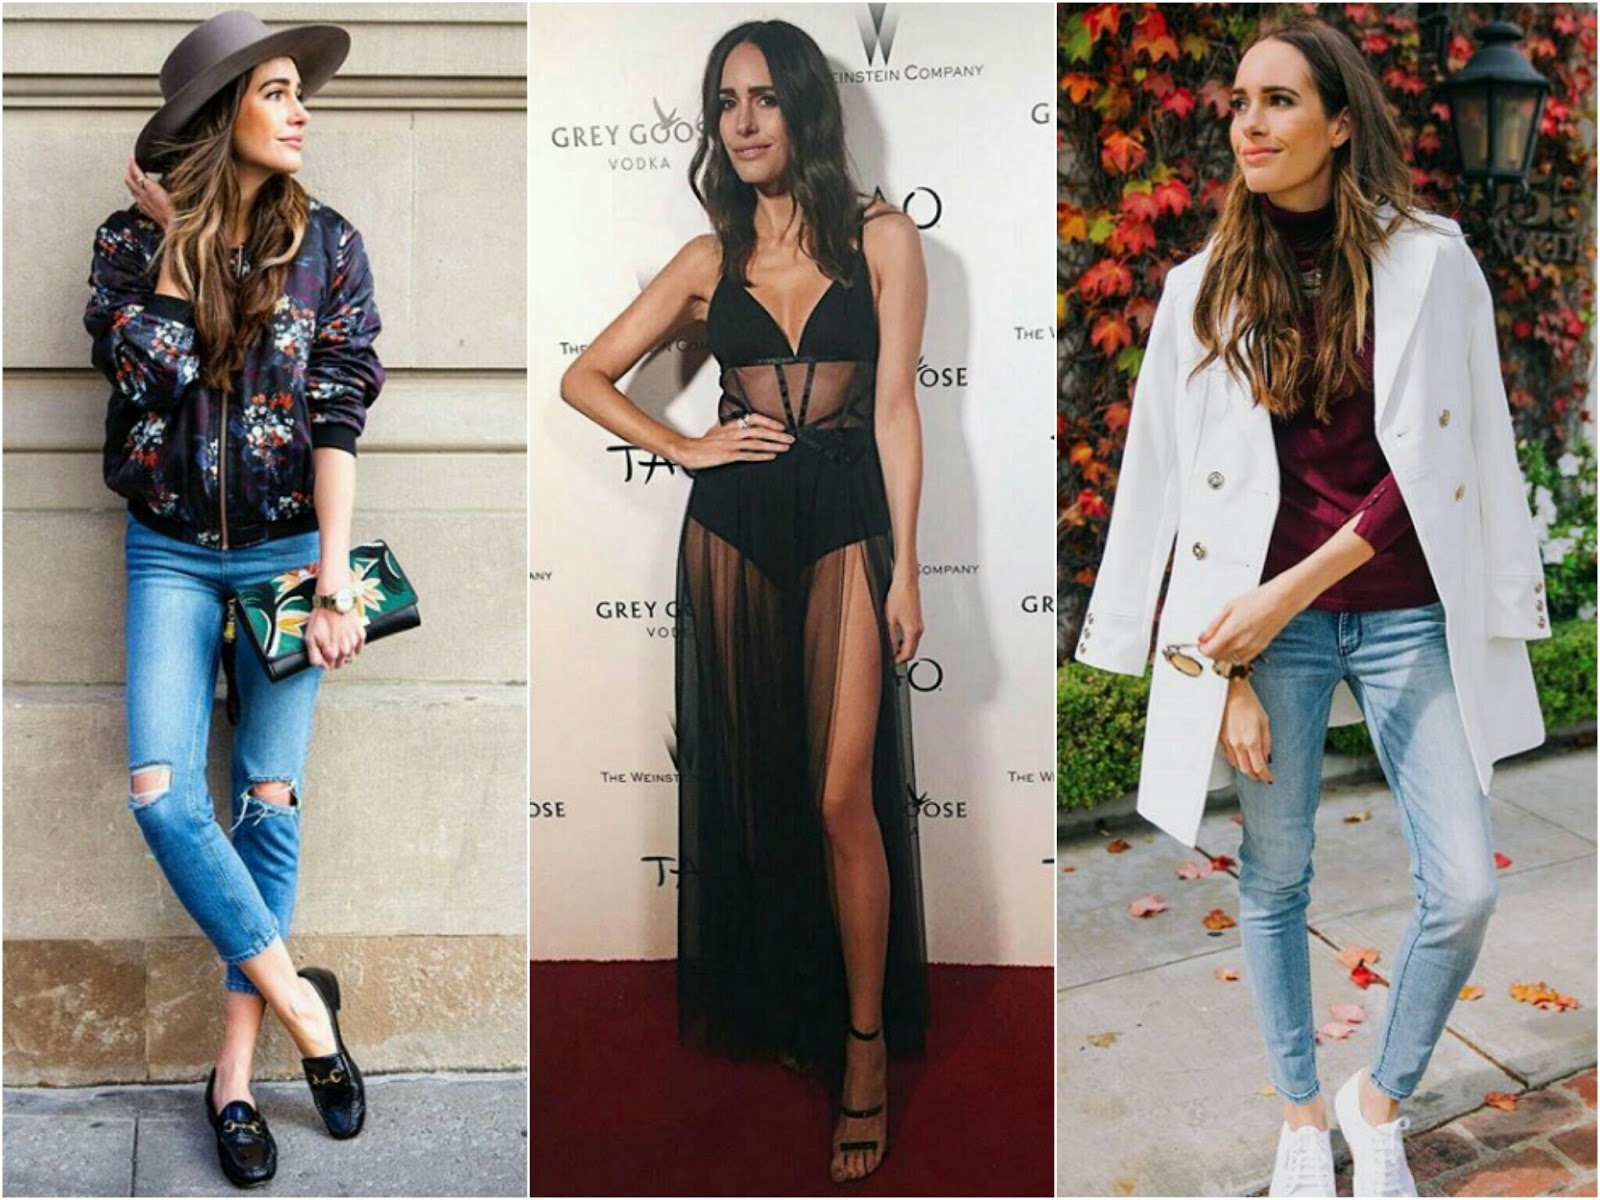 Fashion blogger Louise Roe